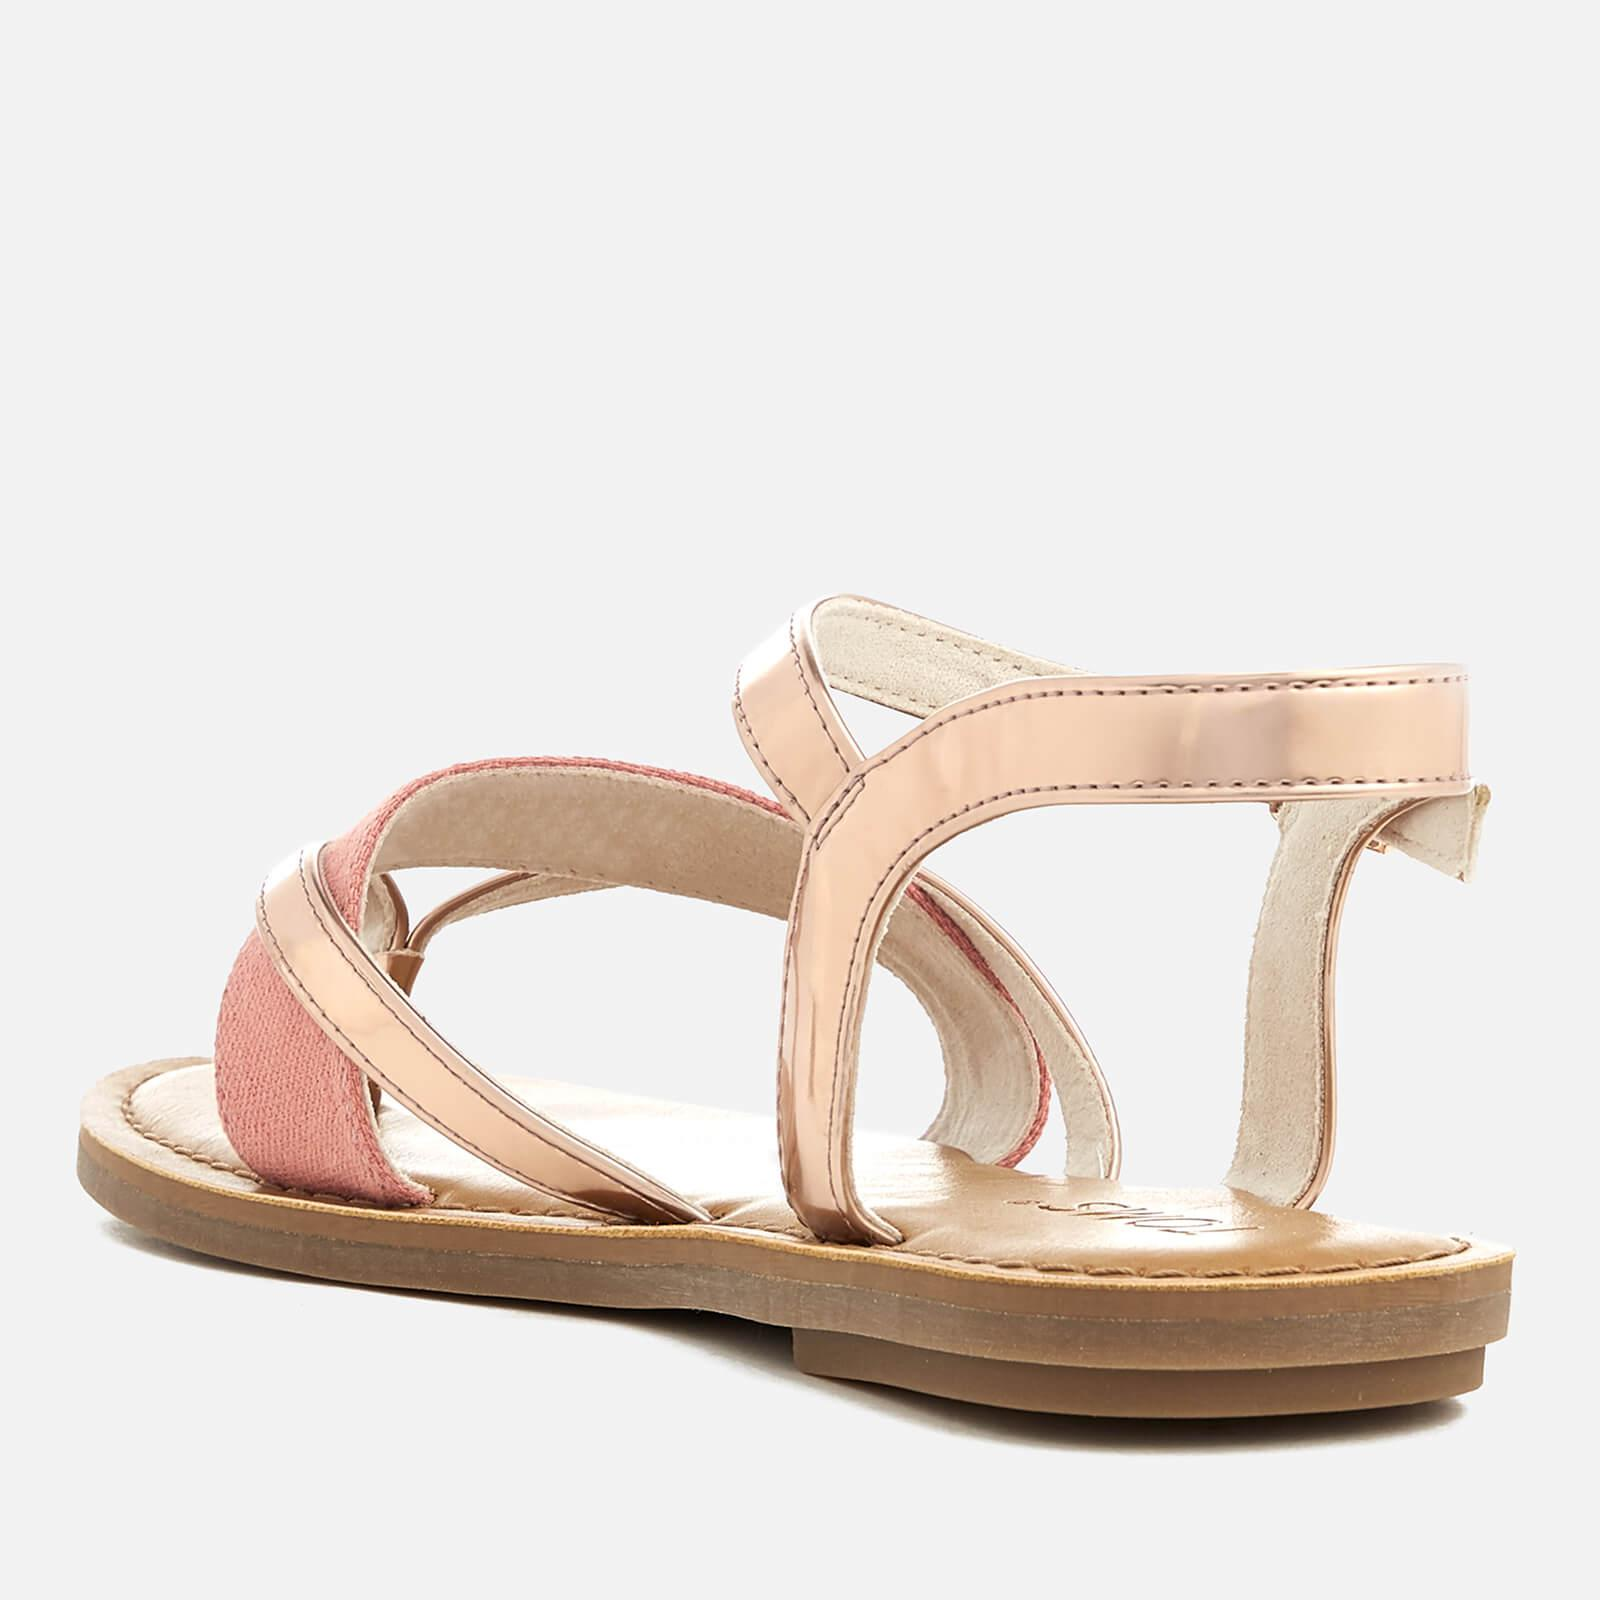 03e0f627546 TOMS - Pink Lexie Strappy Sandals - Lyst. View fullscreen